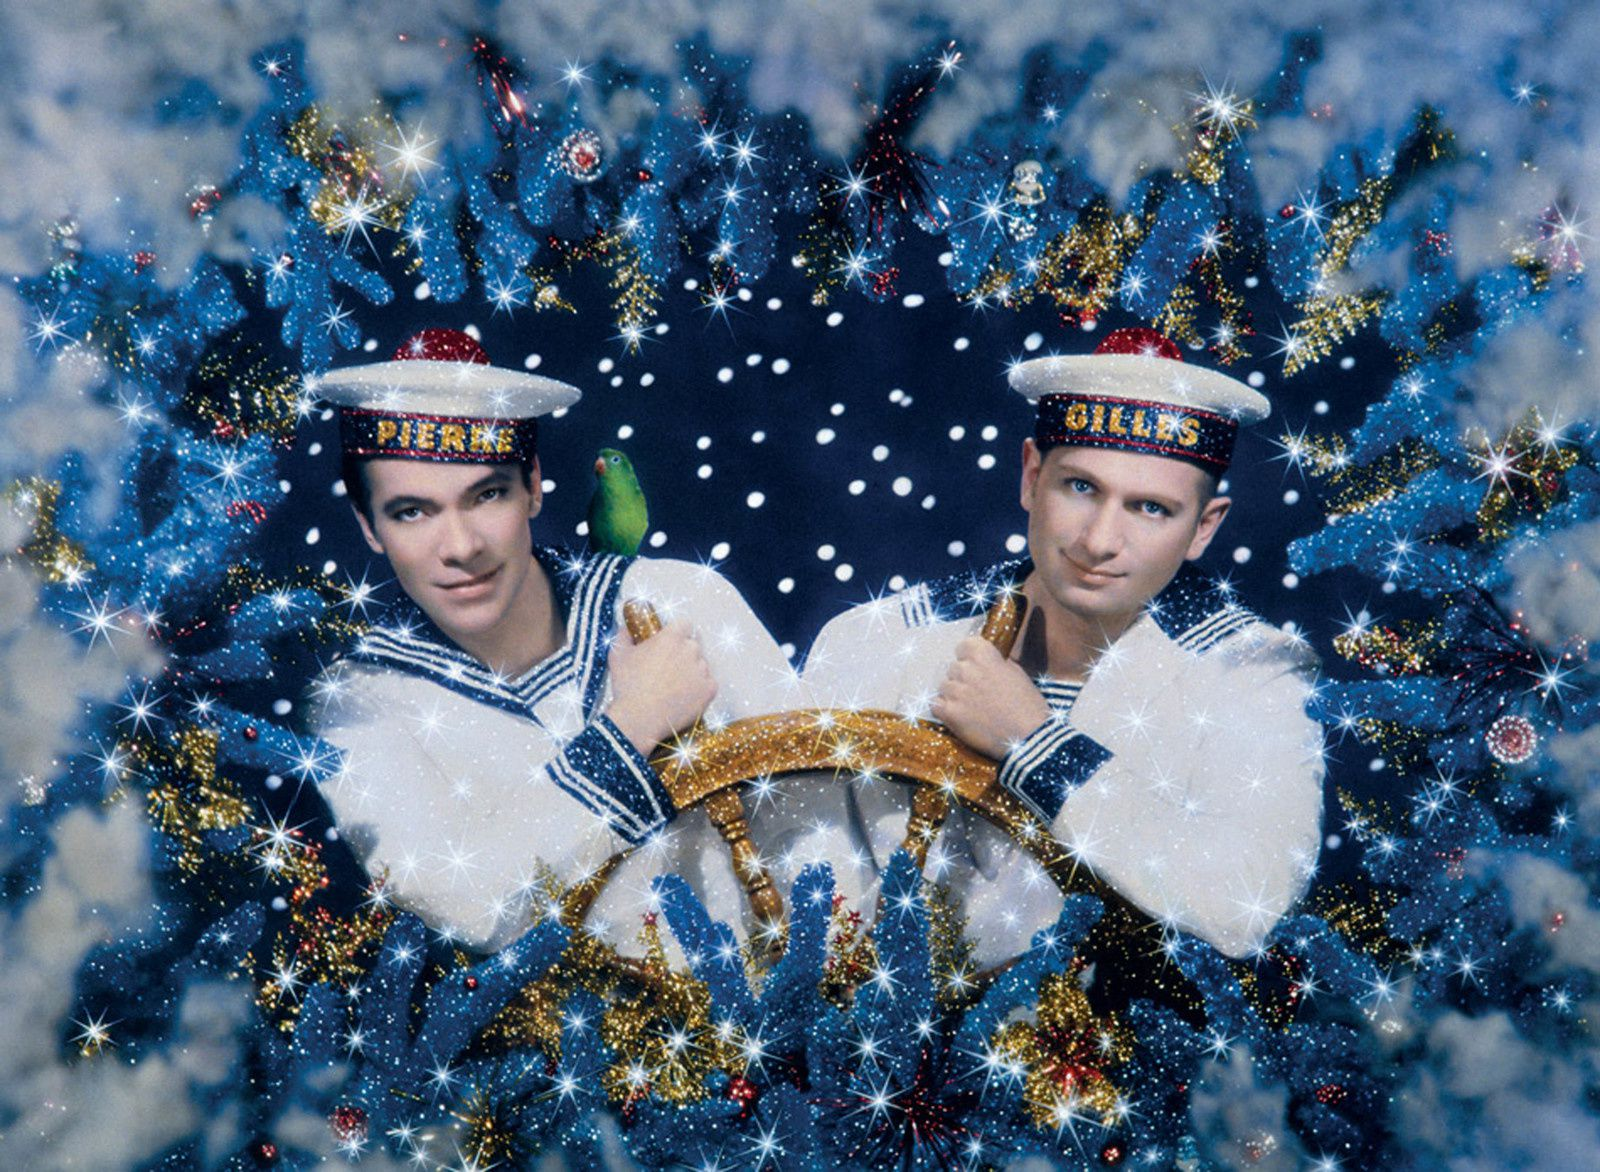 """Les deux marins - autoportrait"", 1993 de PIERRE et GILLES - Courtesy Collection Museums of Fines Arts, Houston, USA"